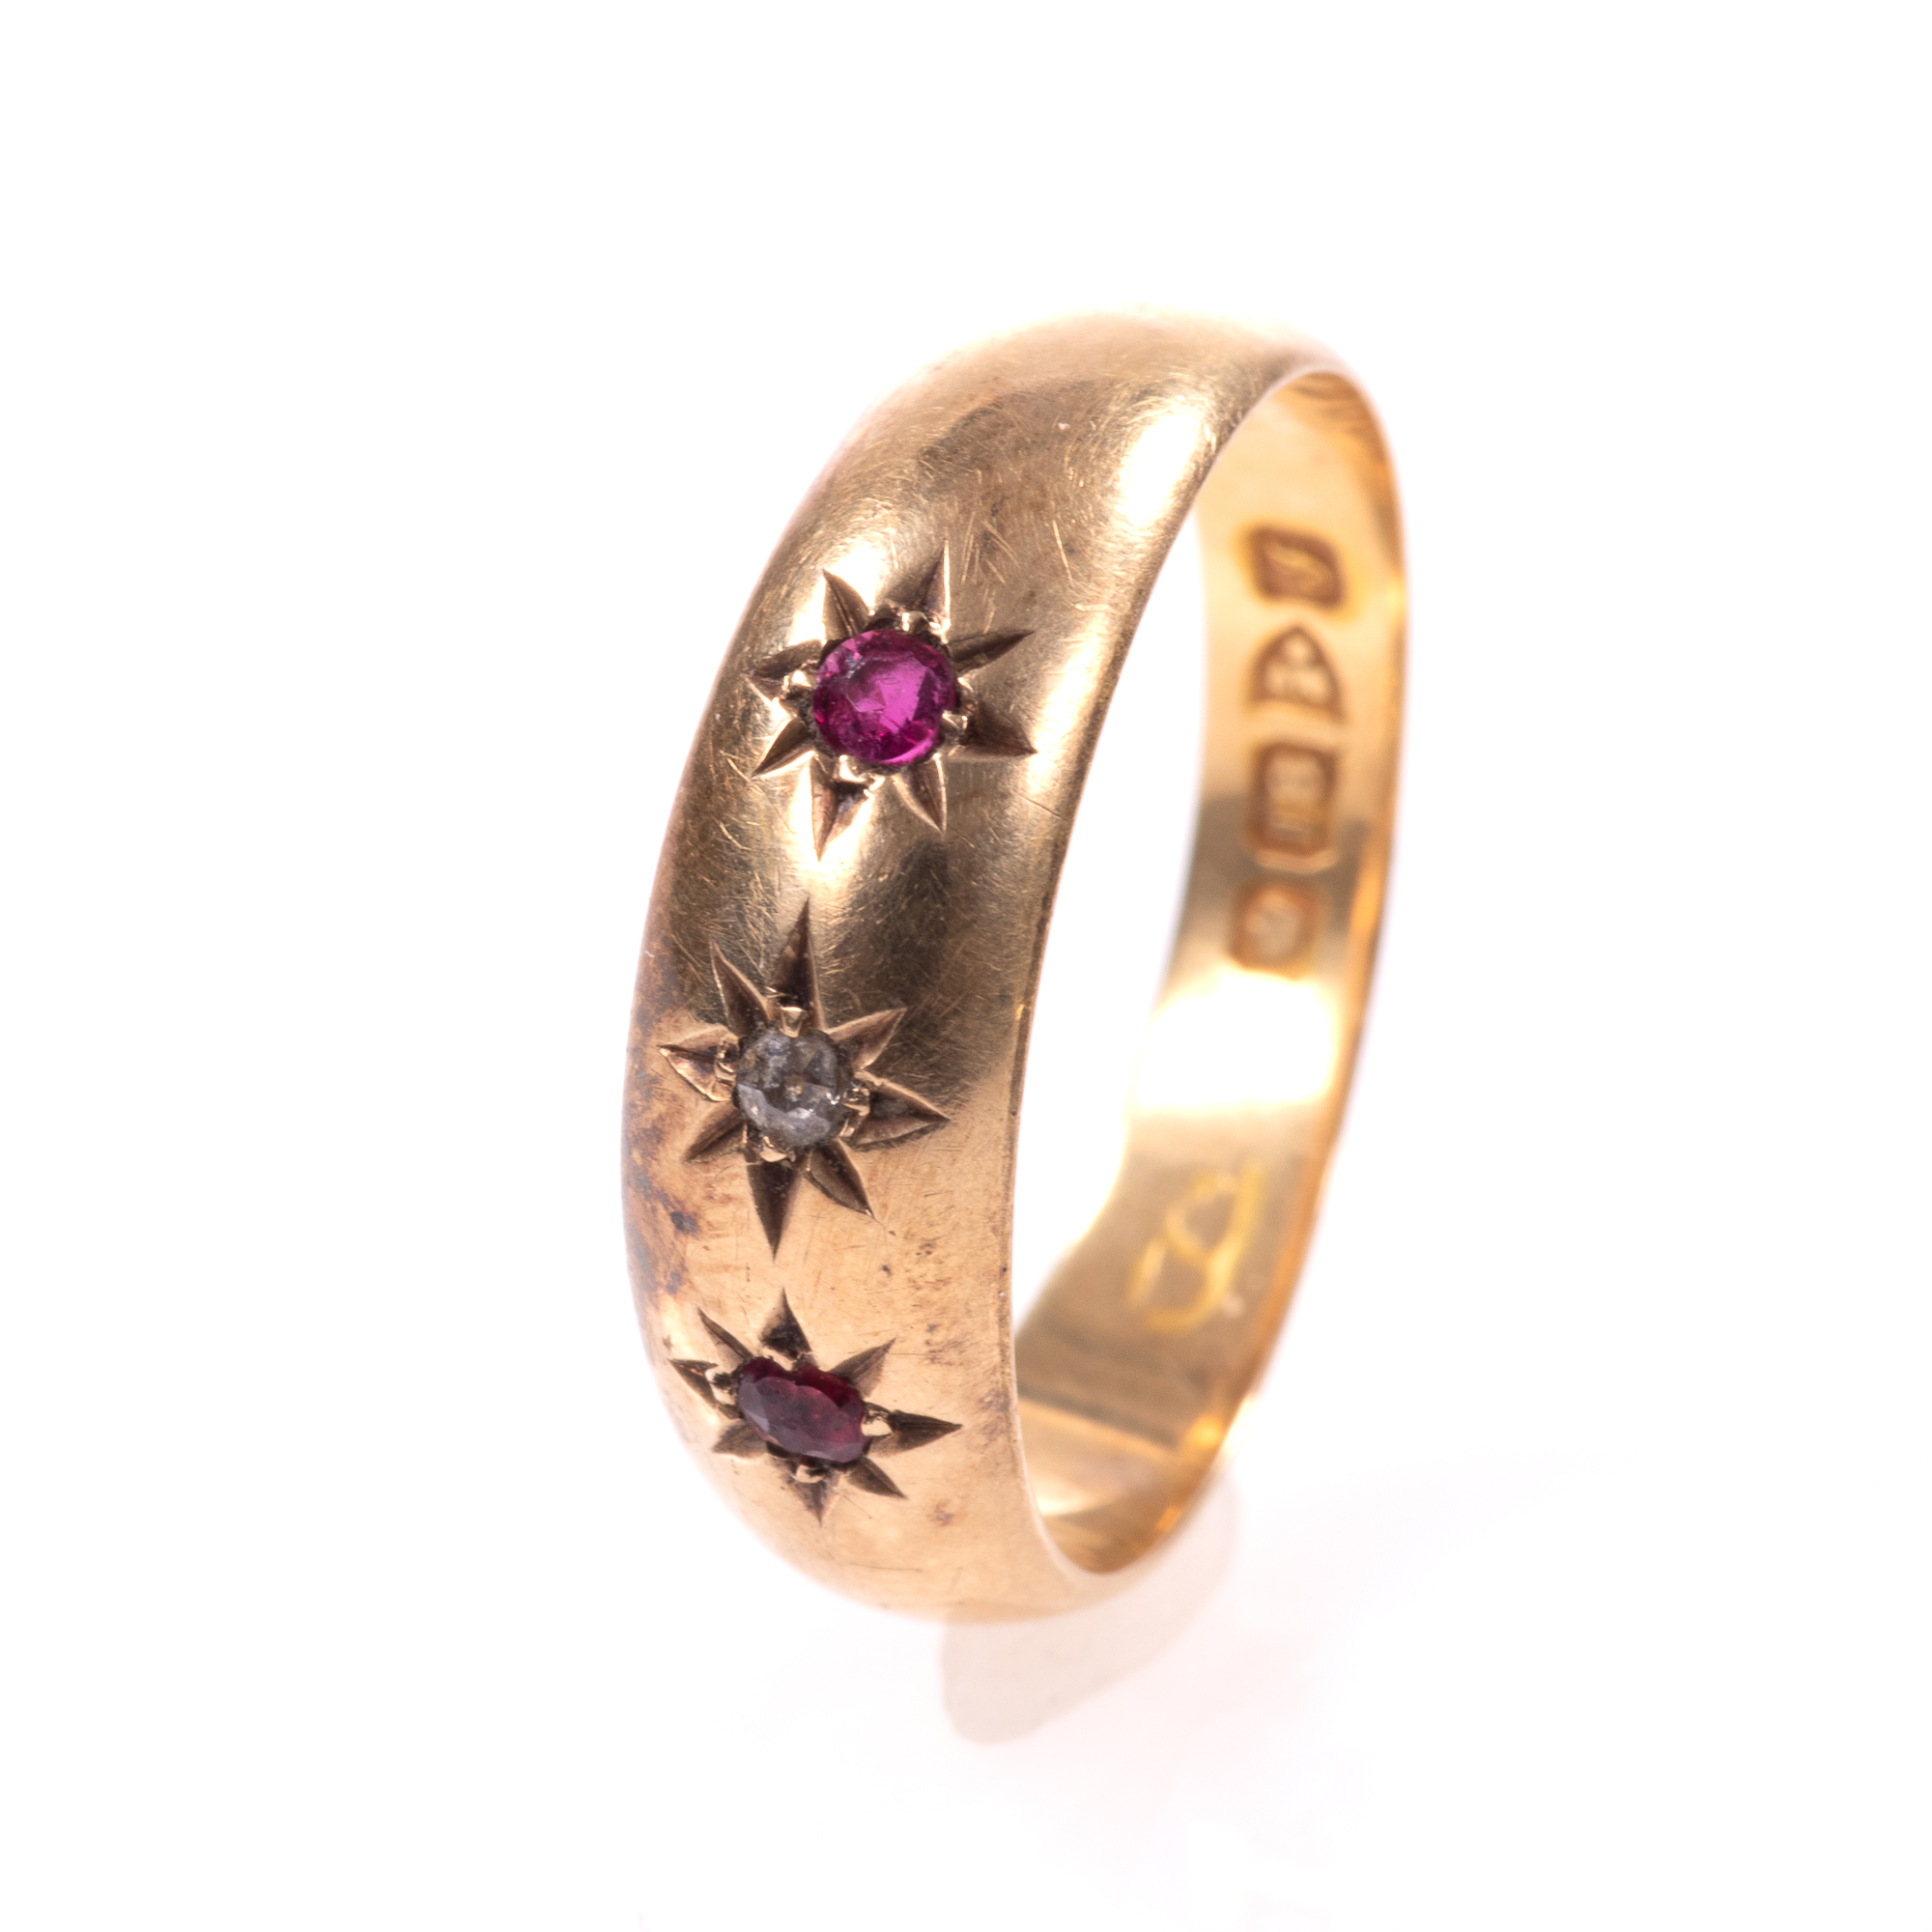 18ct Gold Edwardian Ruby & Diamond Ring Chester 1909